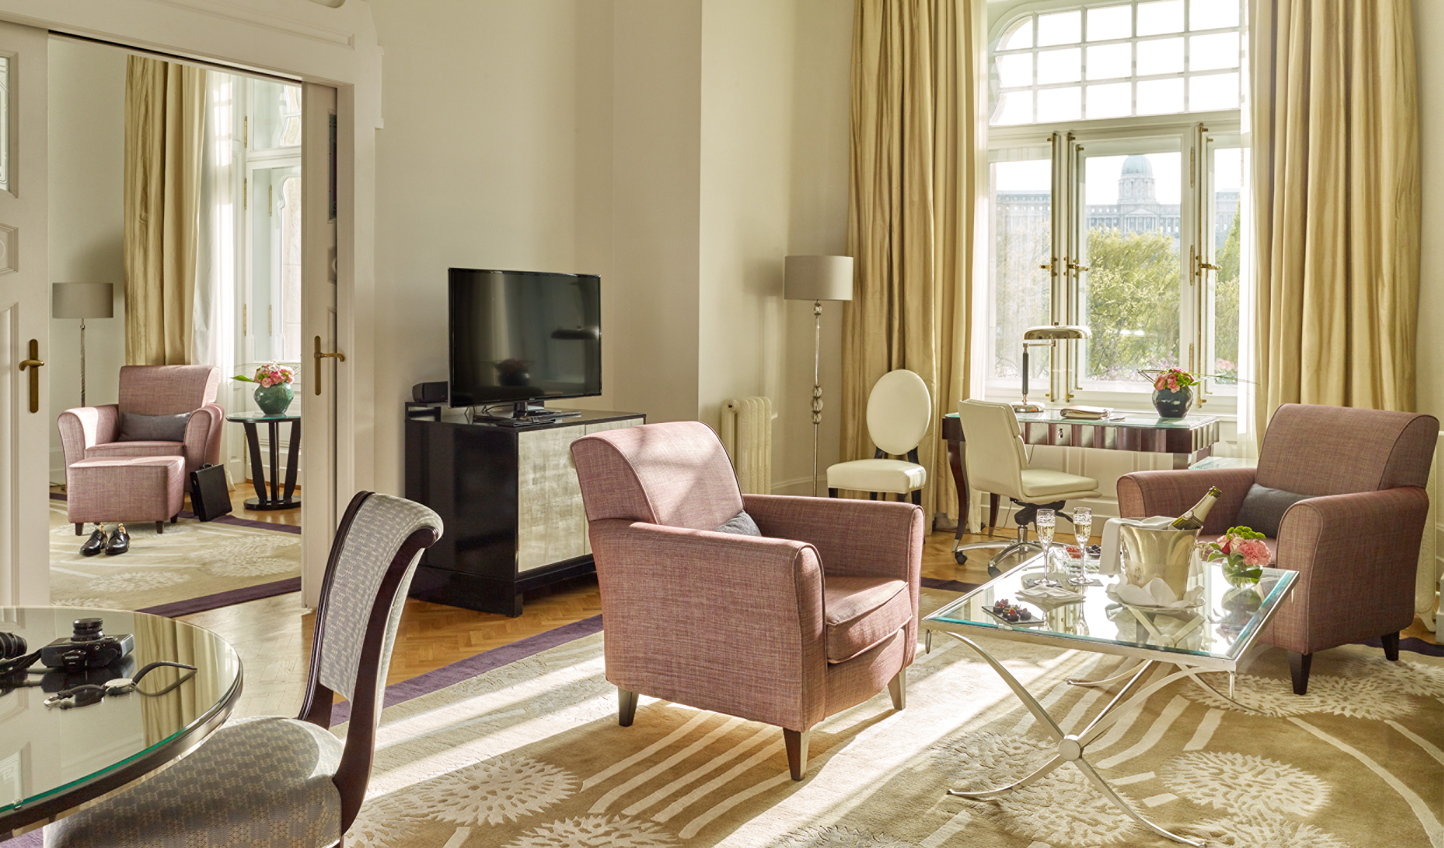 Four Seasons Gresham Palace offers luxurious living in an unrivaled location